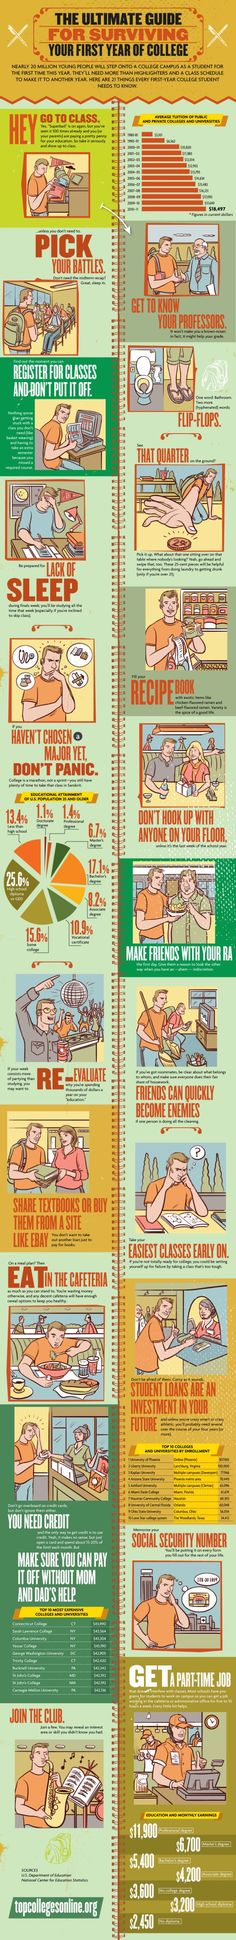 The Ultimate Guide For Surviving Your First Year of College [INFOGRAPHIC]